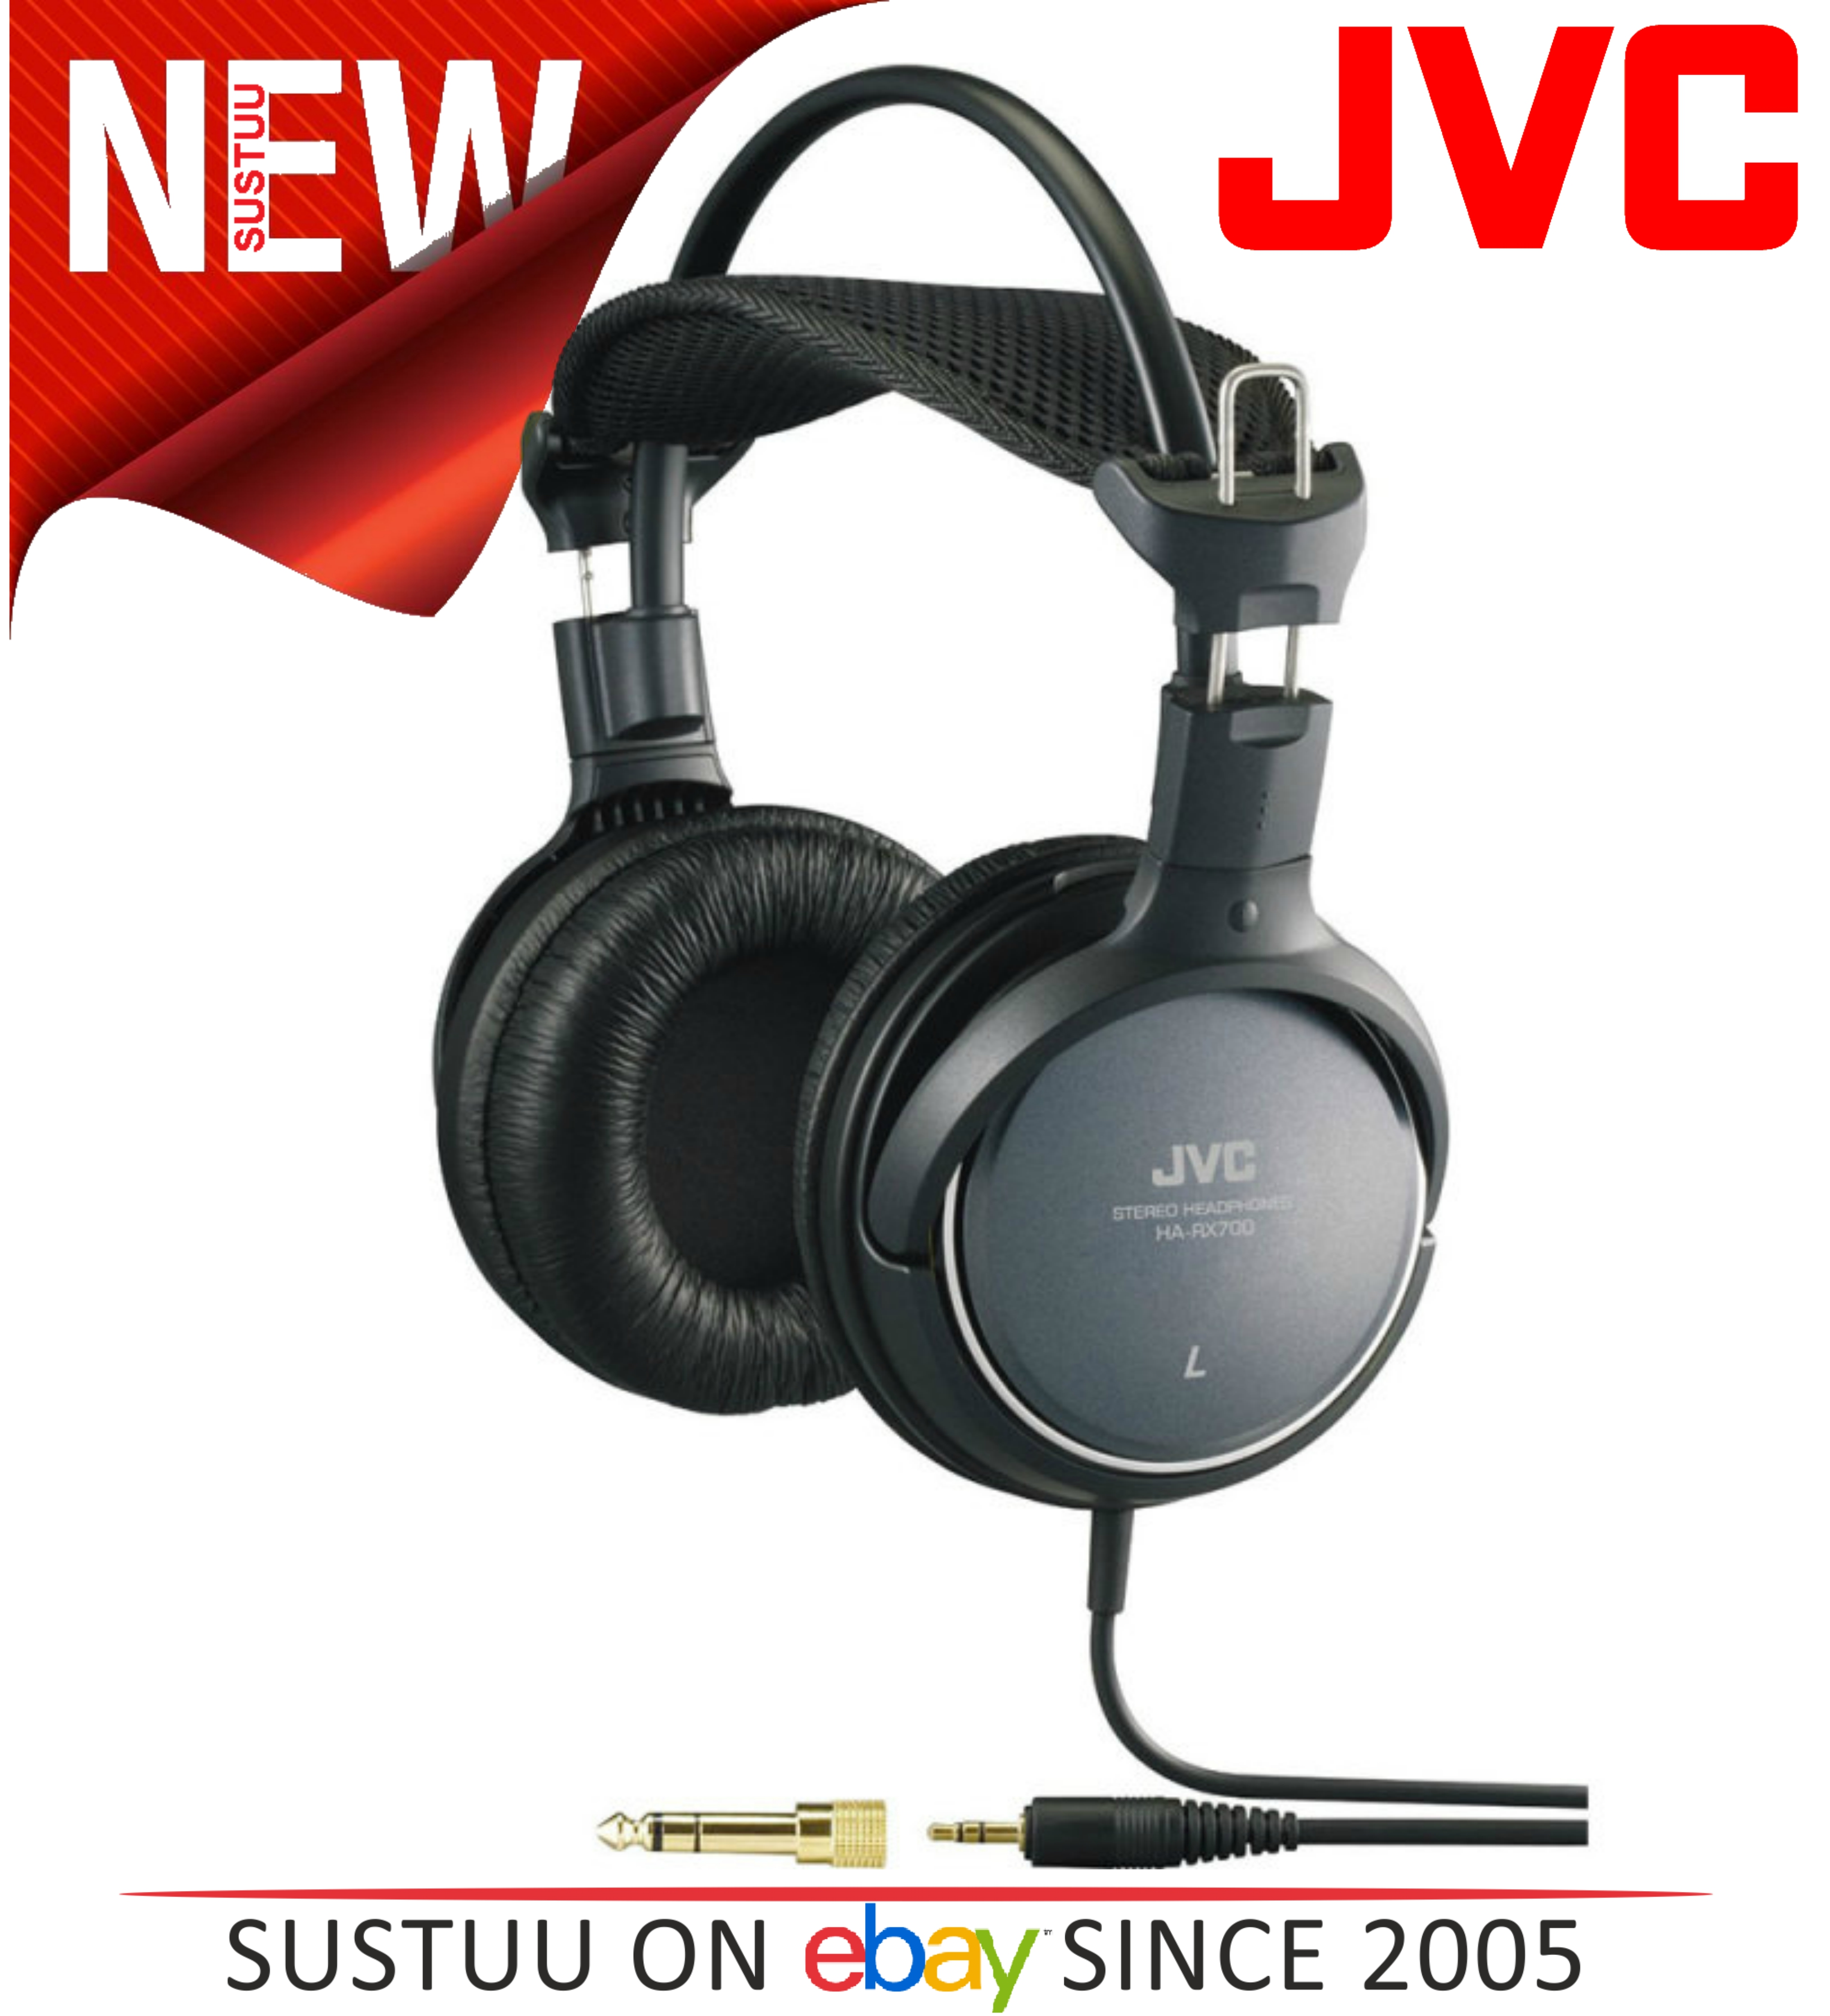 JVC HARX700 Over-Ear Extra Bass Stereo Headphones for iPhone iPod MP3 & Android